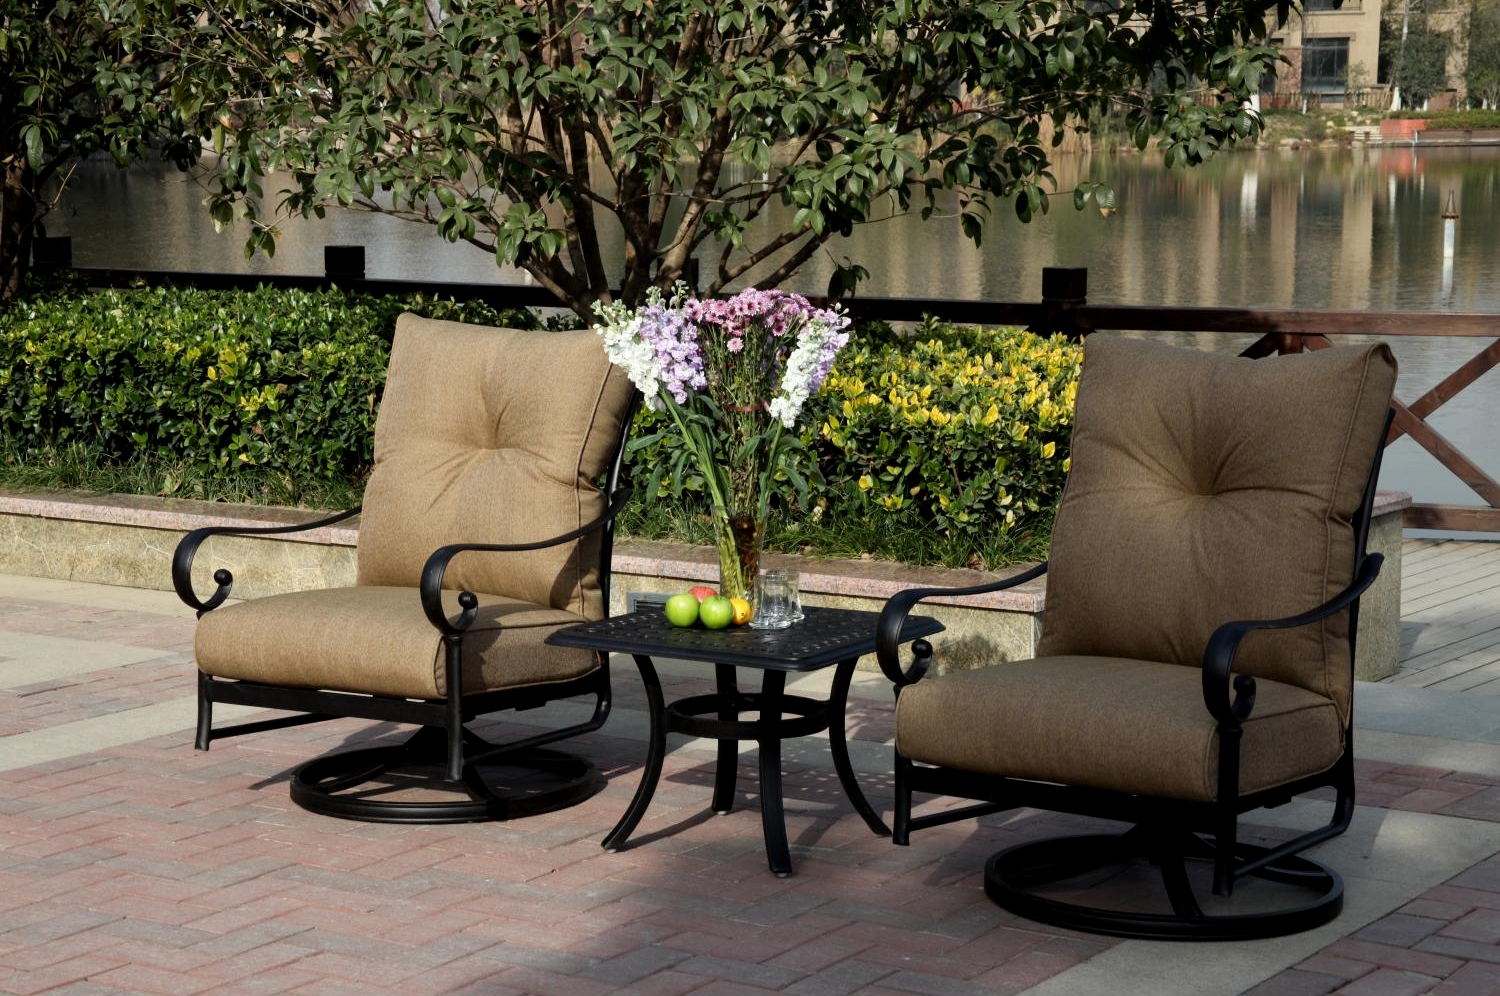 bistro set with swivel chairs suede dining room patio furniture cast aluminum rocker 3pc santa